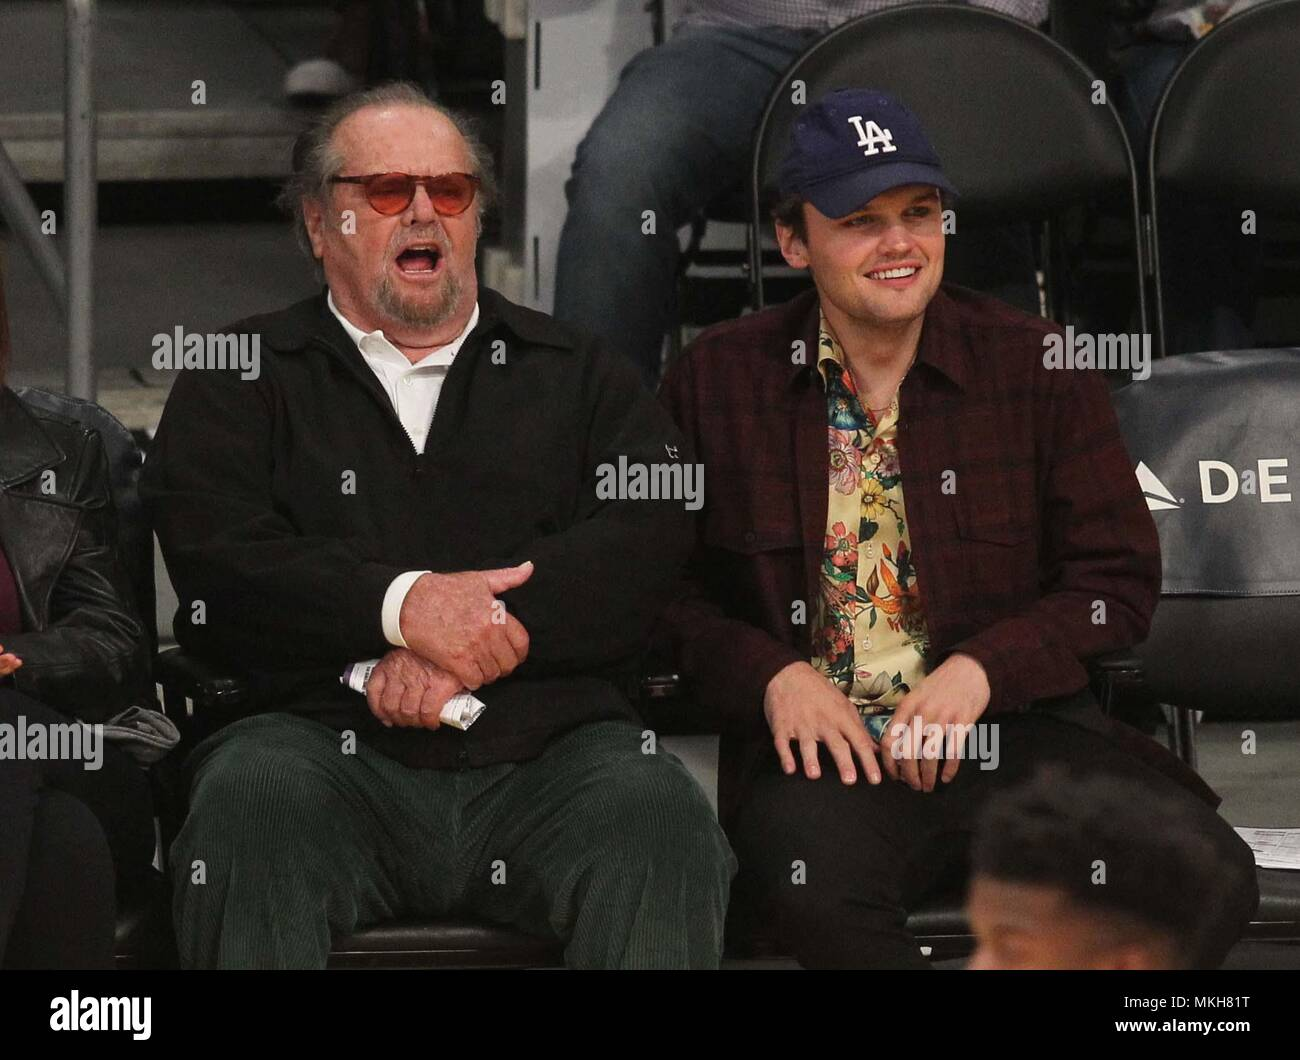 Ray Nicholson High Resolution Stock Photography And Images Alamy Леона́рдо вильге́льм ди ка́прио (англ. https www alamy com celebrities at the los angeles lakers game the minnesota timberwolves defeated the los angeles lakers by the final score of 113 96 at staples center in los angeles featuring jack nicholson ray nicholson where los angeles california united states when 06 apr 2018 credit wenncom image184161652 html